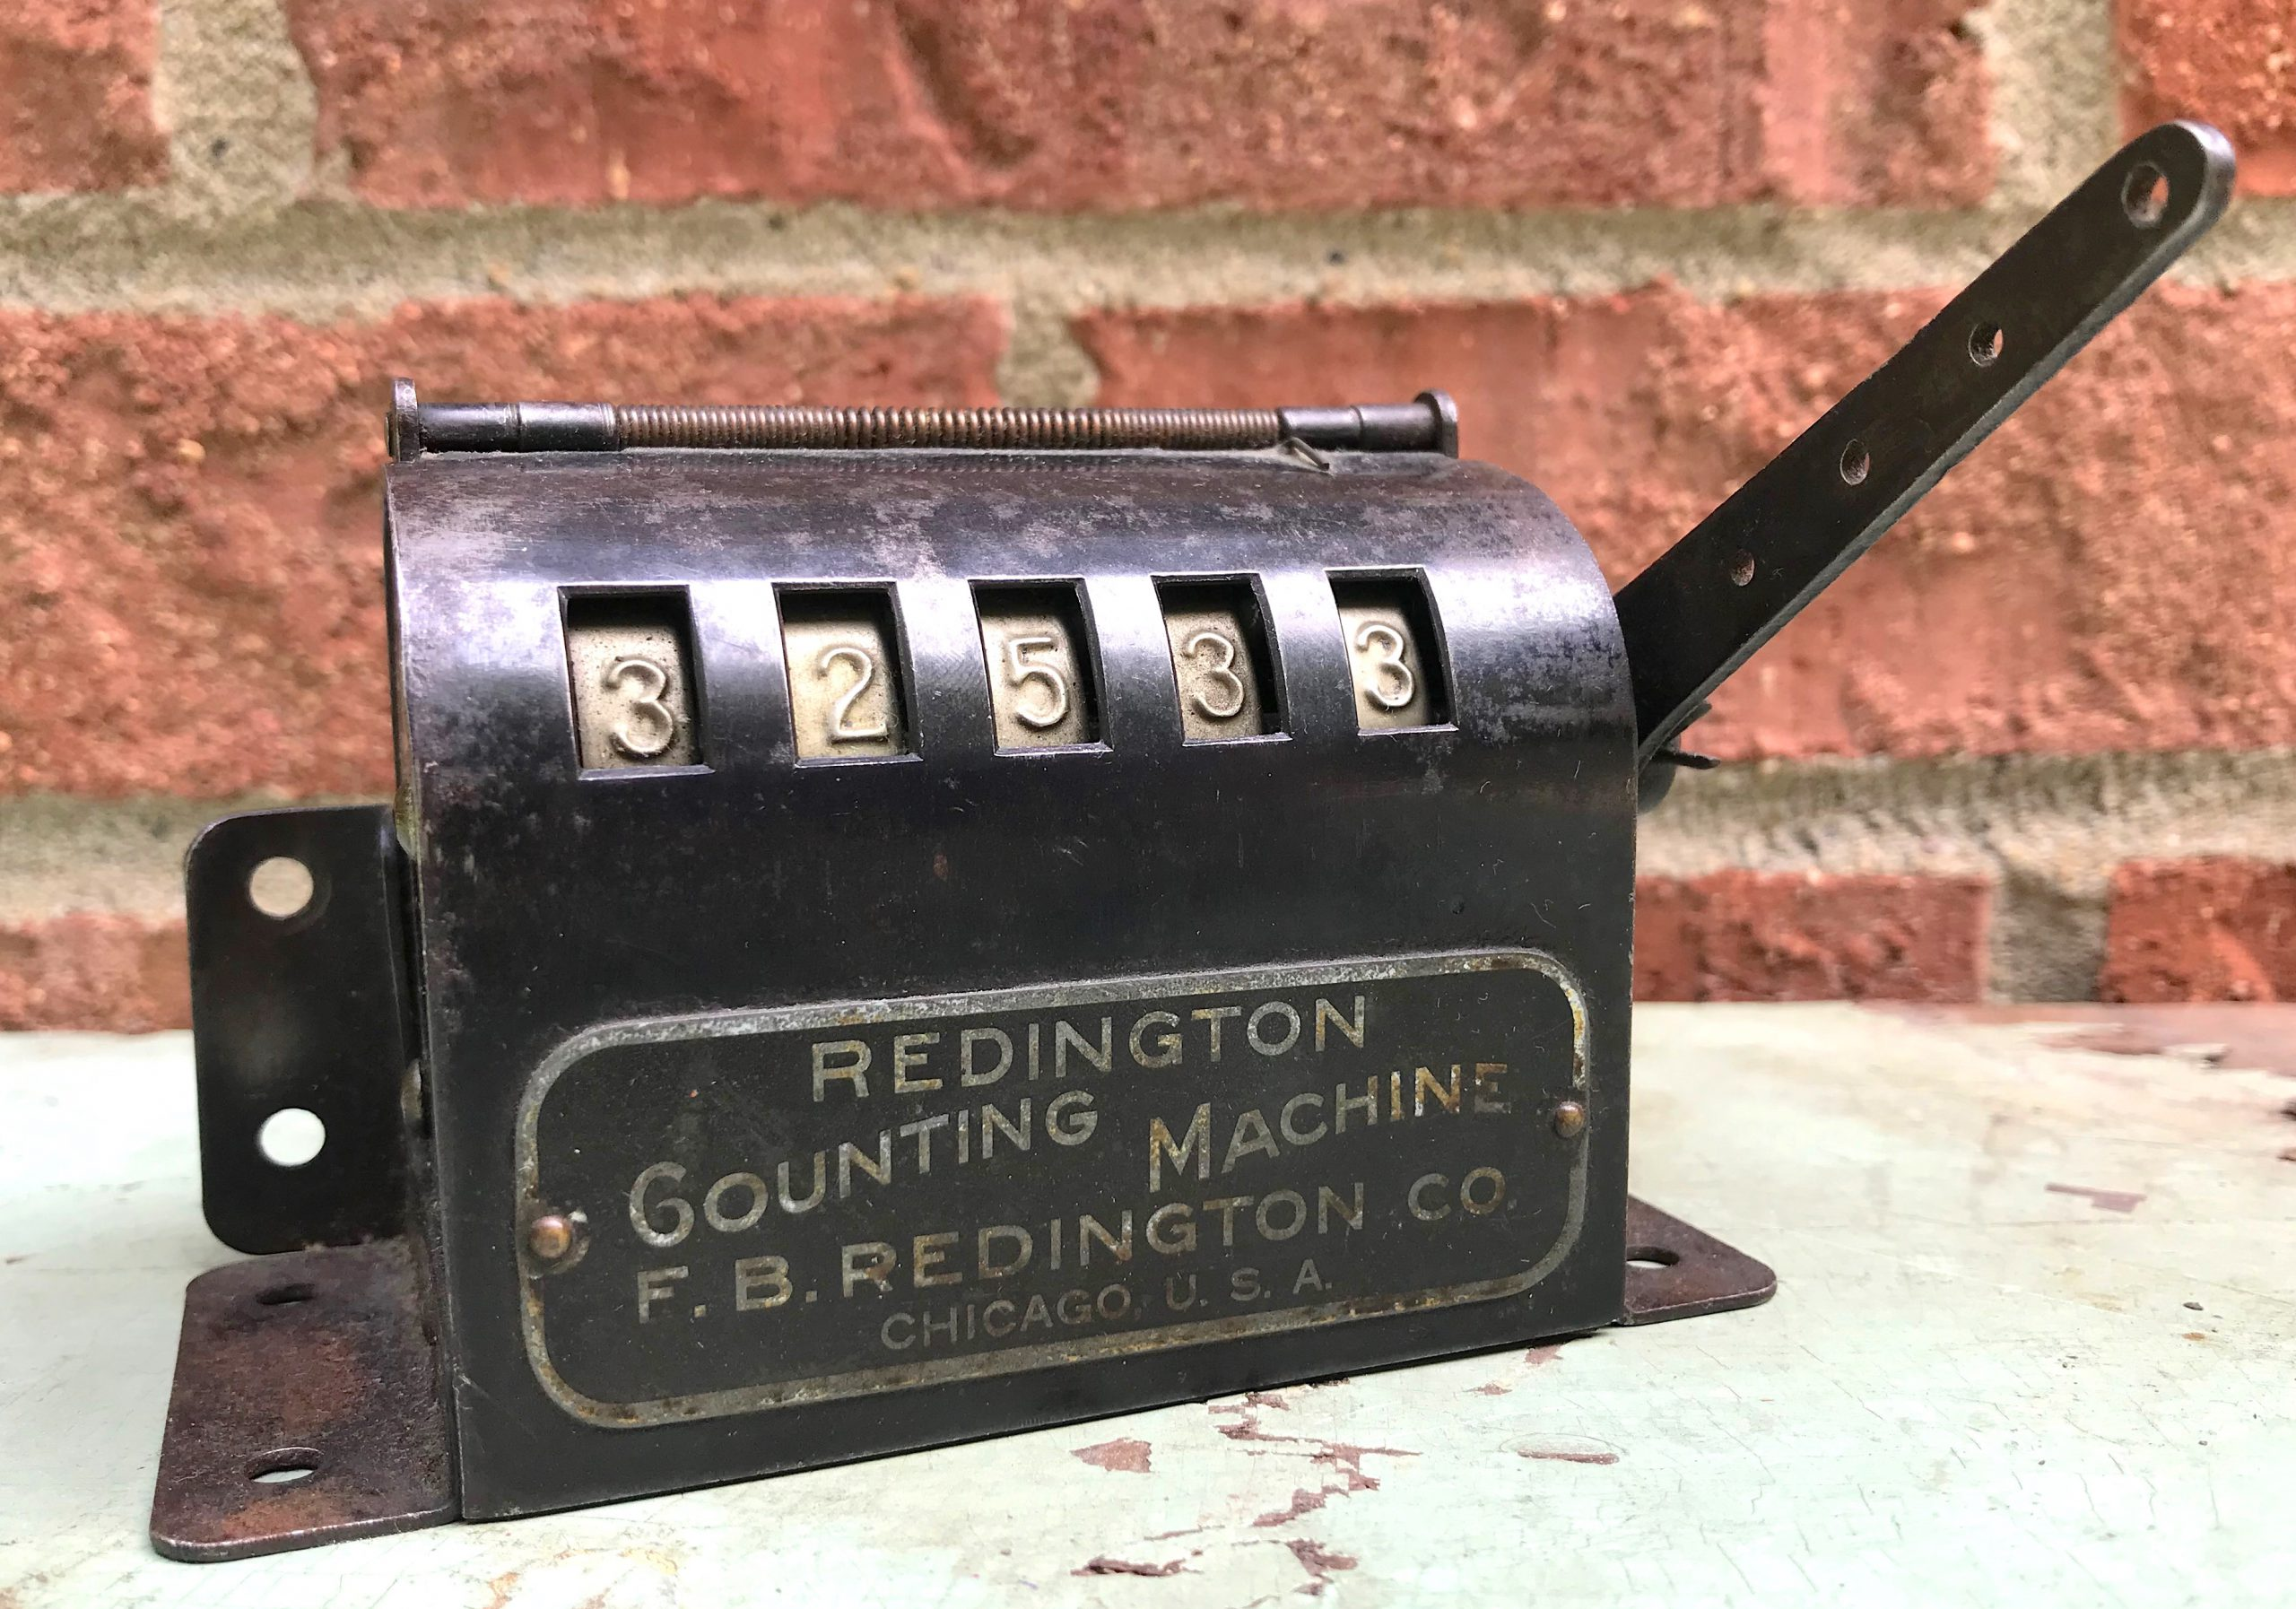 F.B. Redington Co., est. 1897